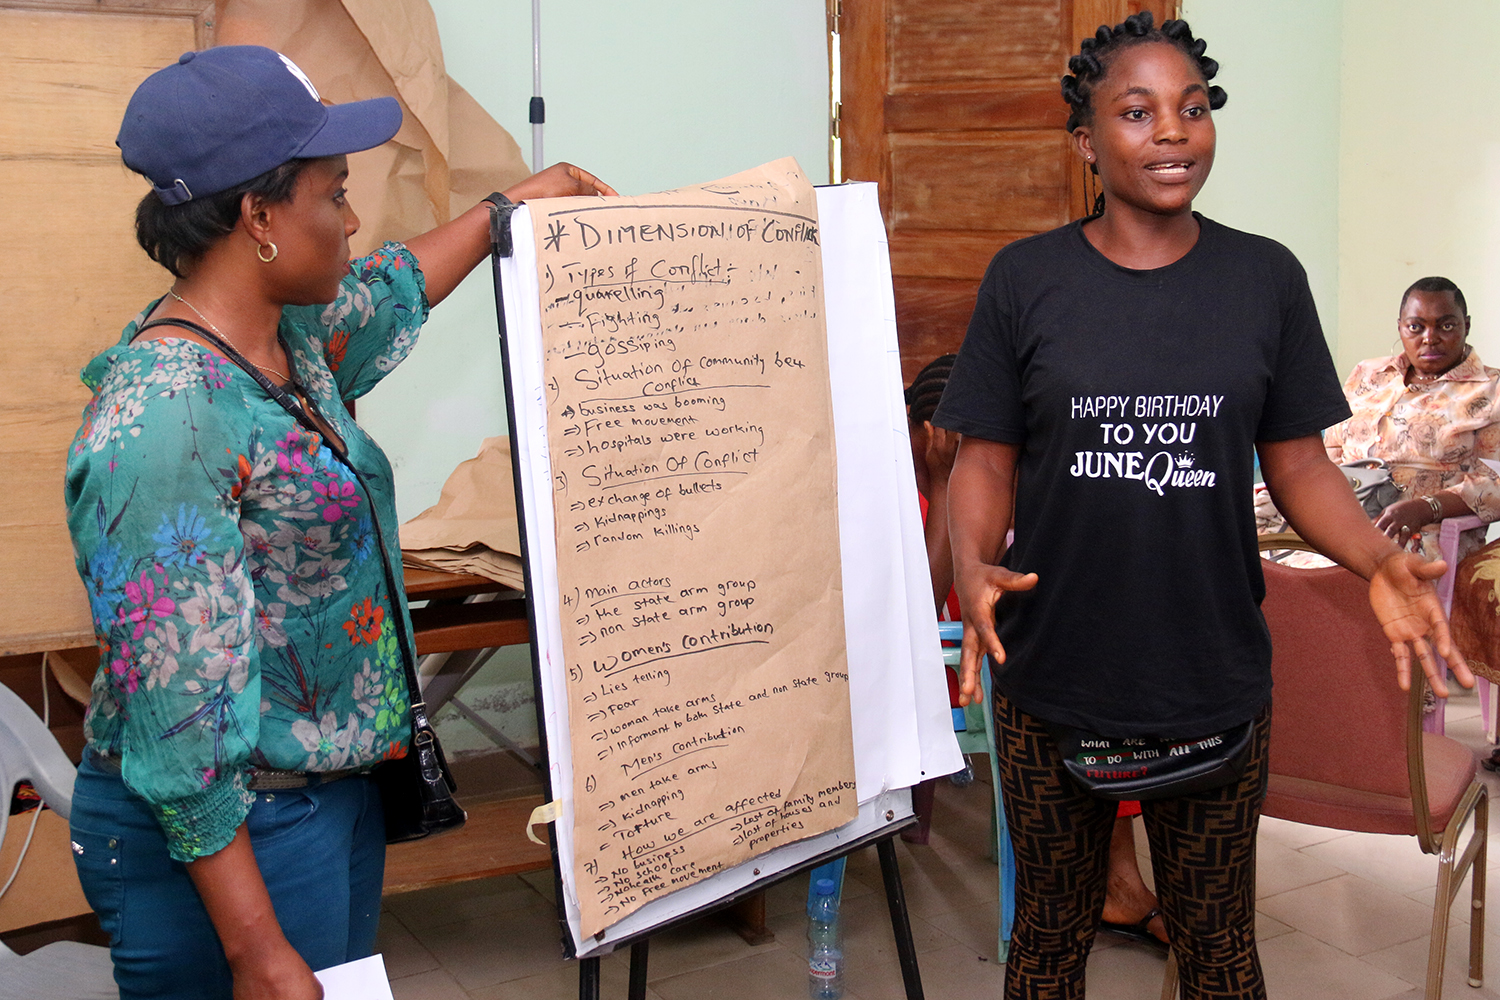 Two women standing next to a flip chart. On flip chart notes. Title on notes: Dimension of Conflict.